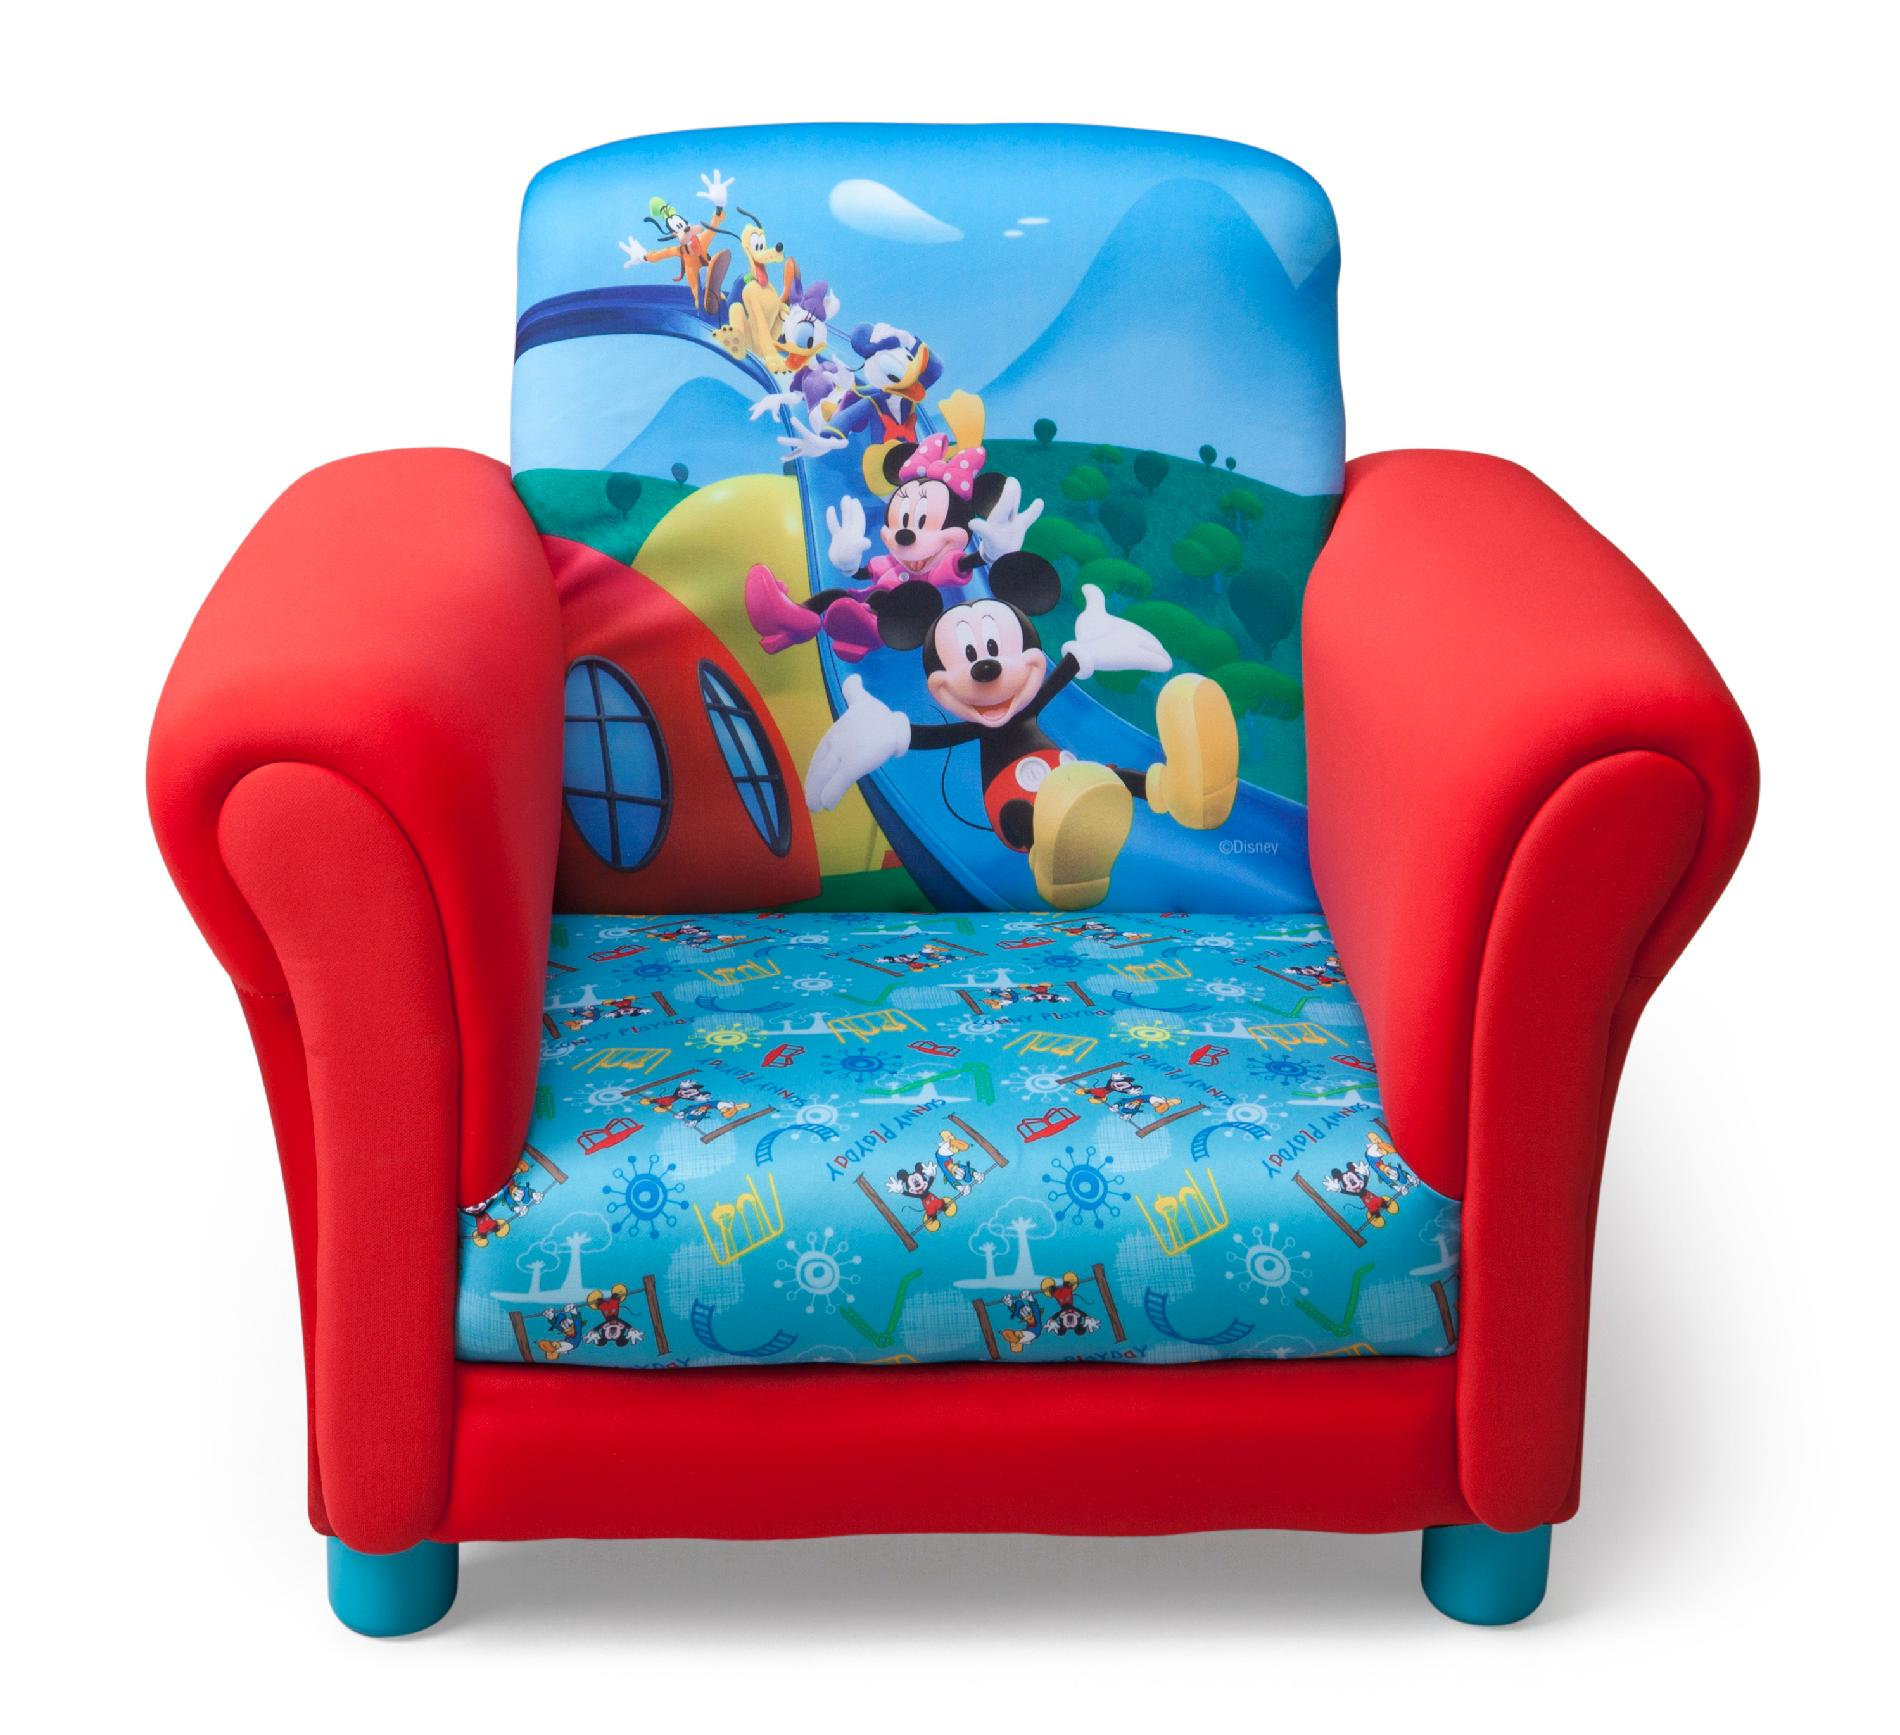 mickey mouse clubhouse chair best executive for lower back pain delta children tc85692mm kids club upholstered disney